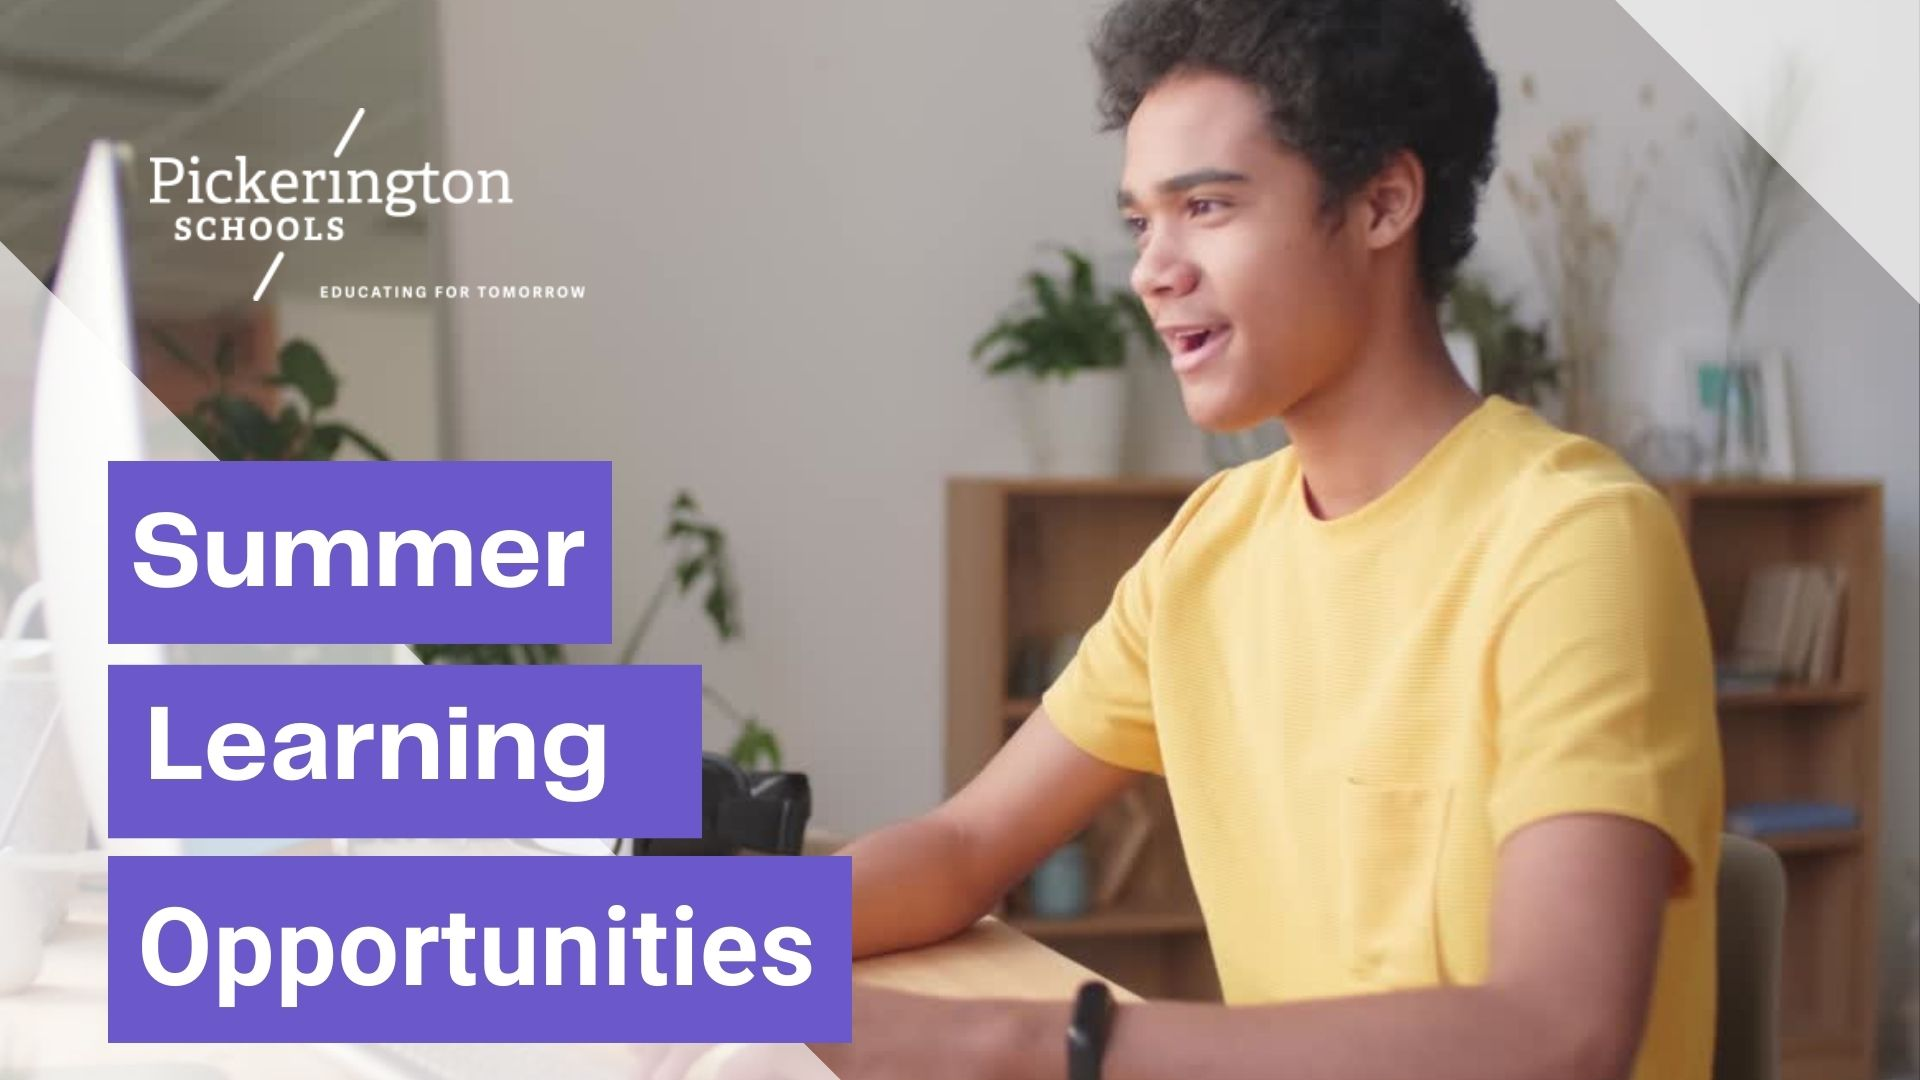 Summer Learning Opportunities image